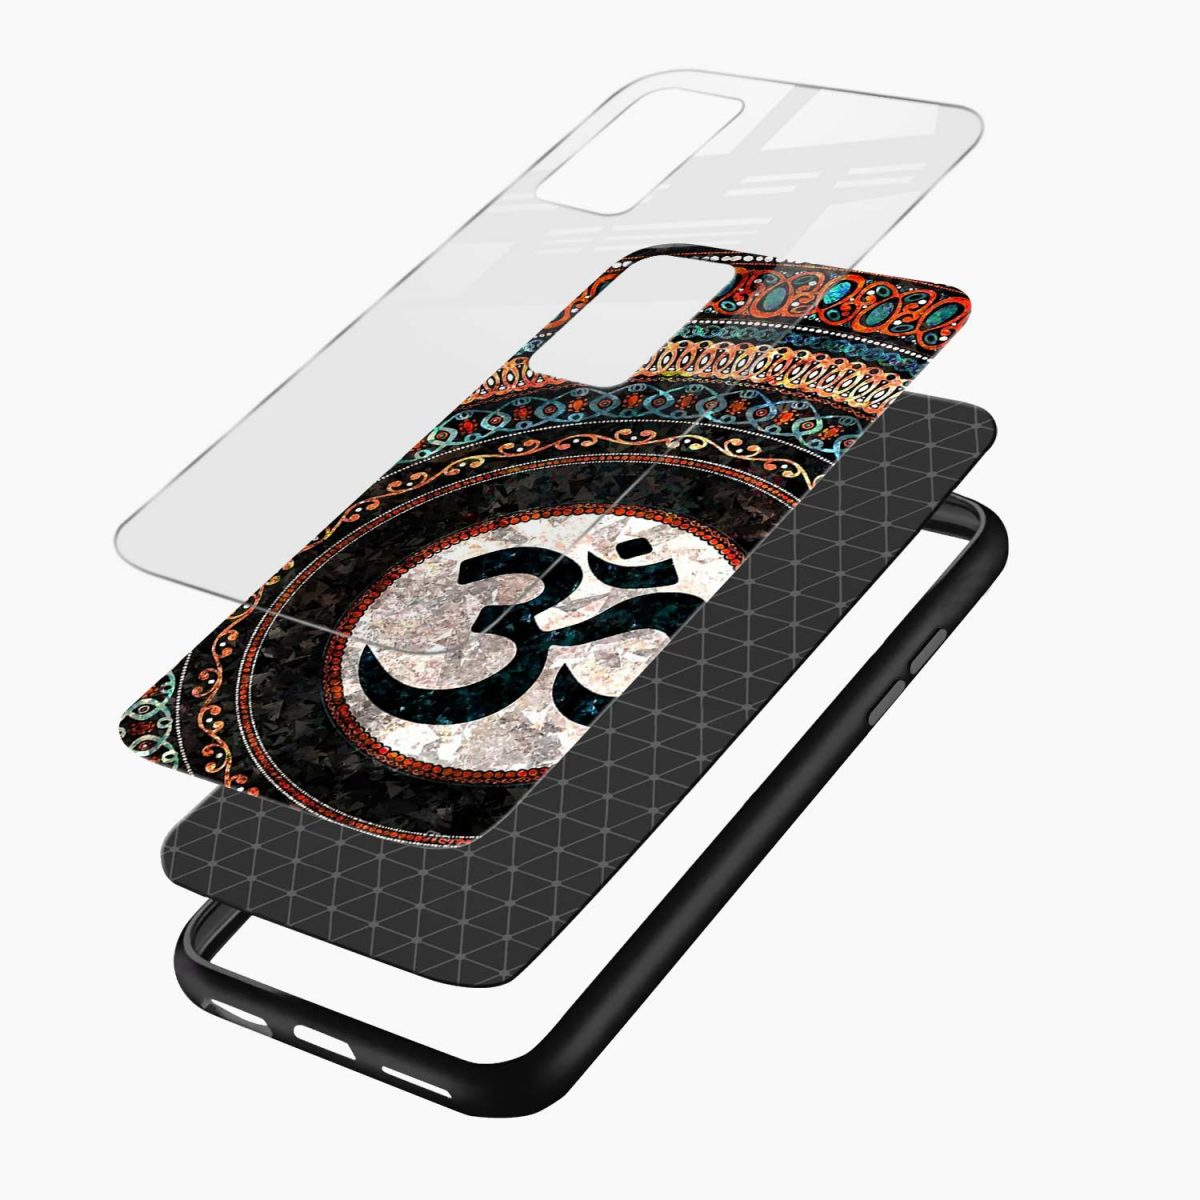 om glass layers view samsung galaxy note20 ultra back cover